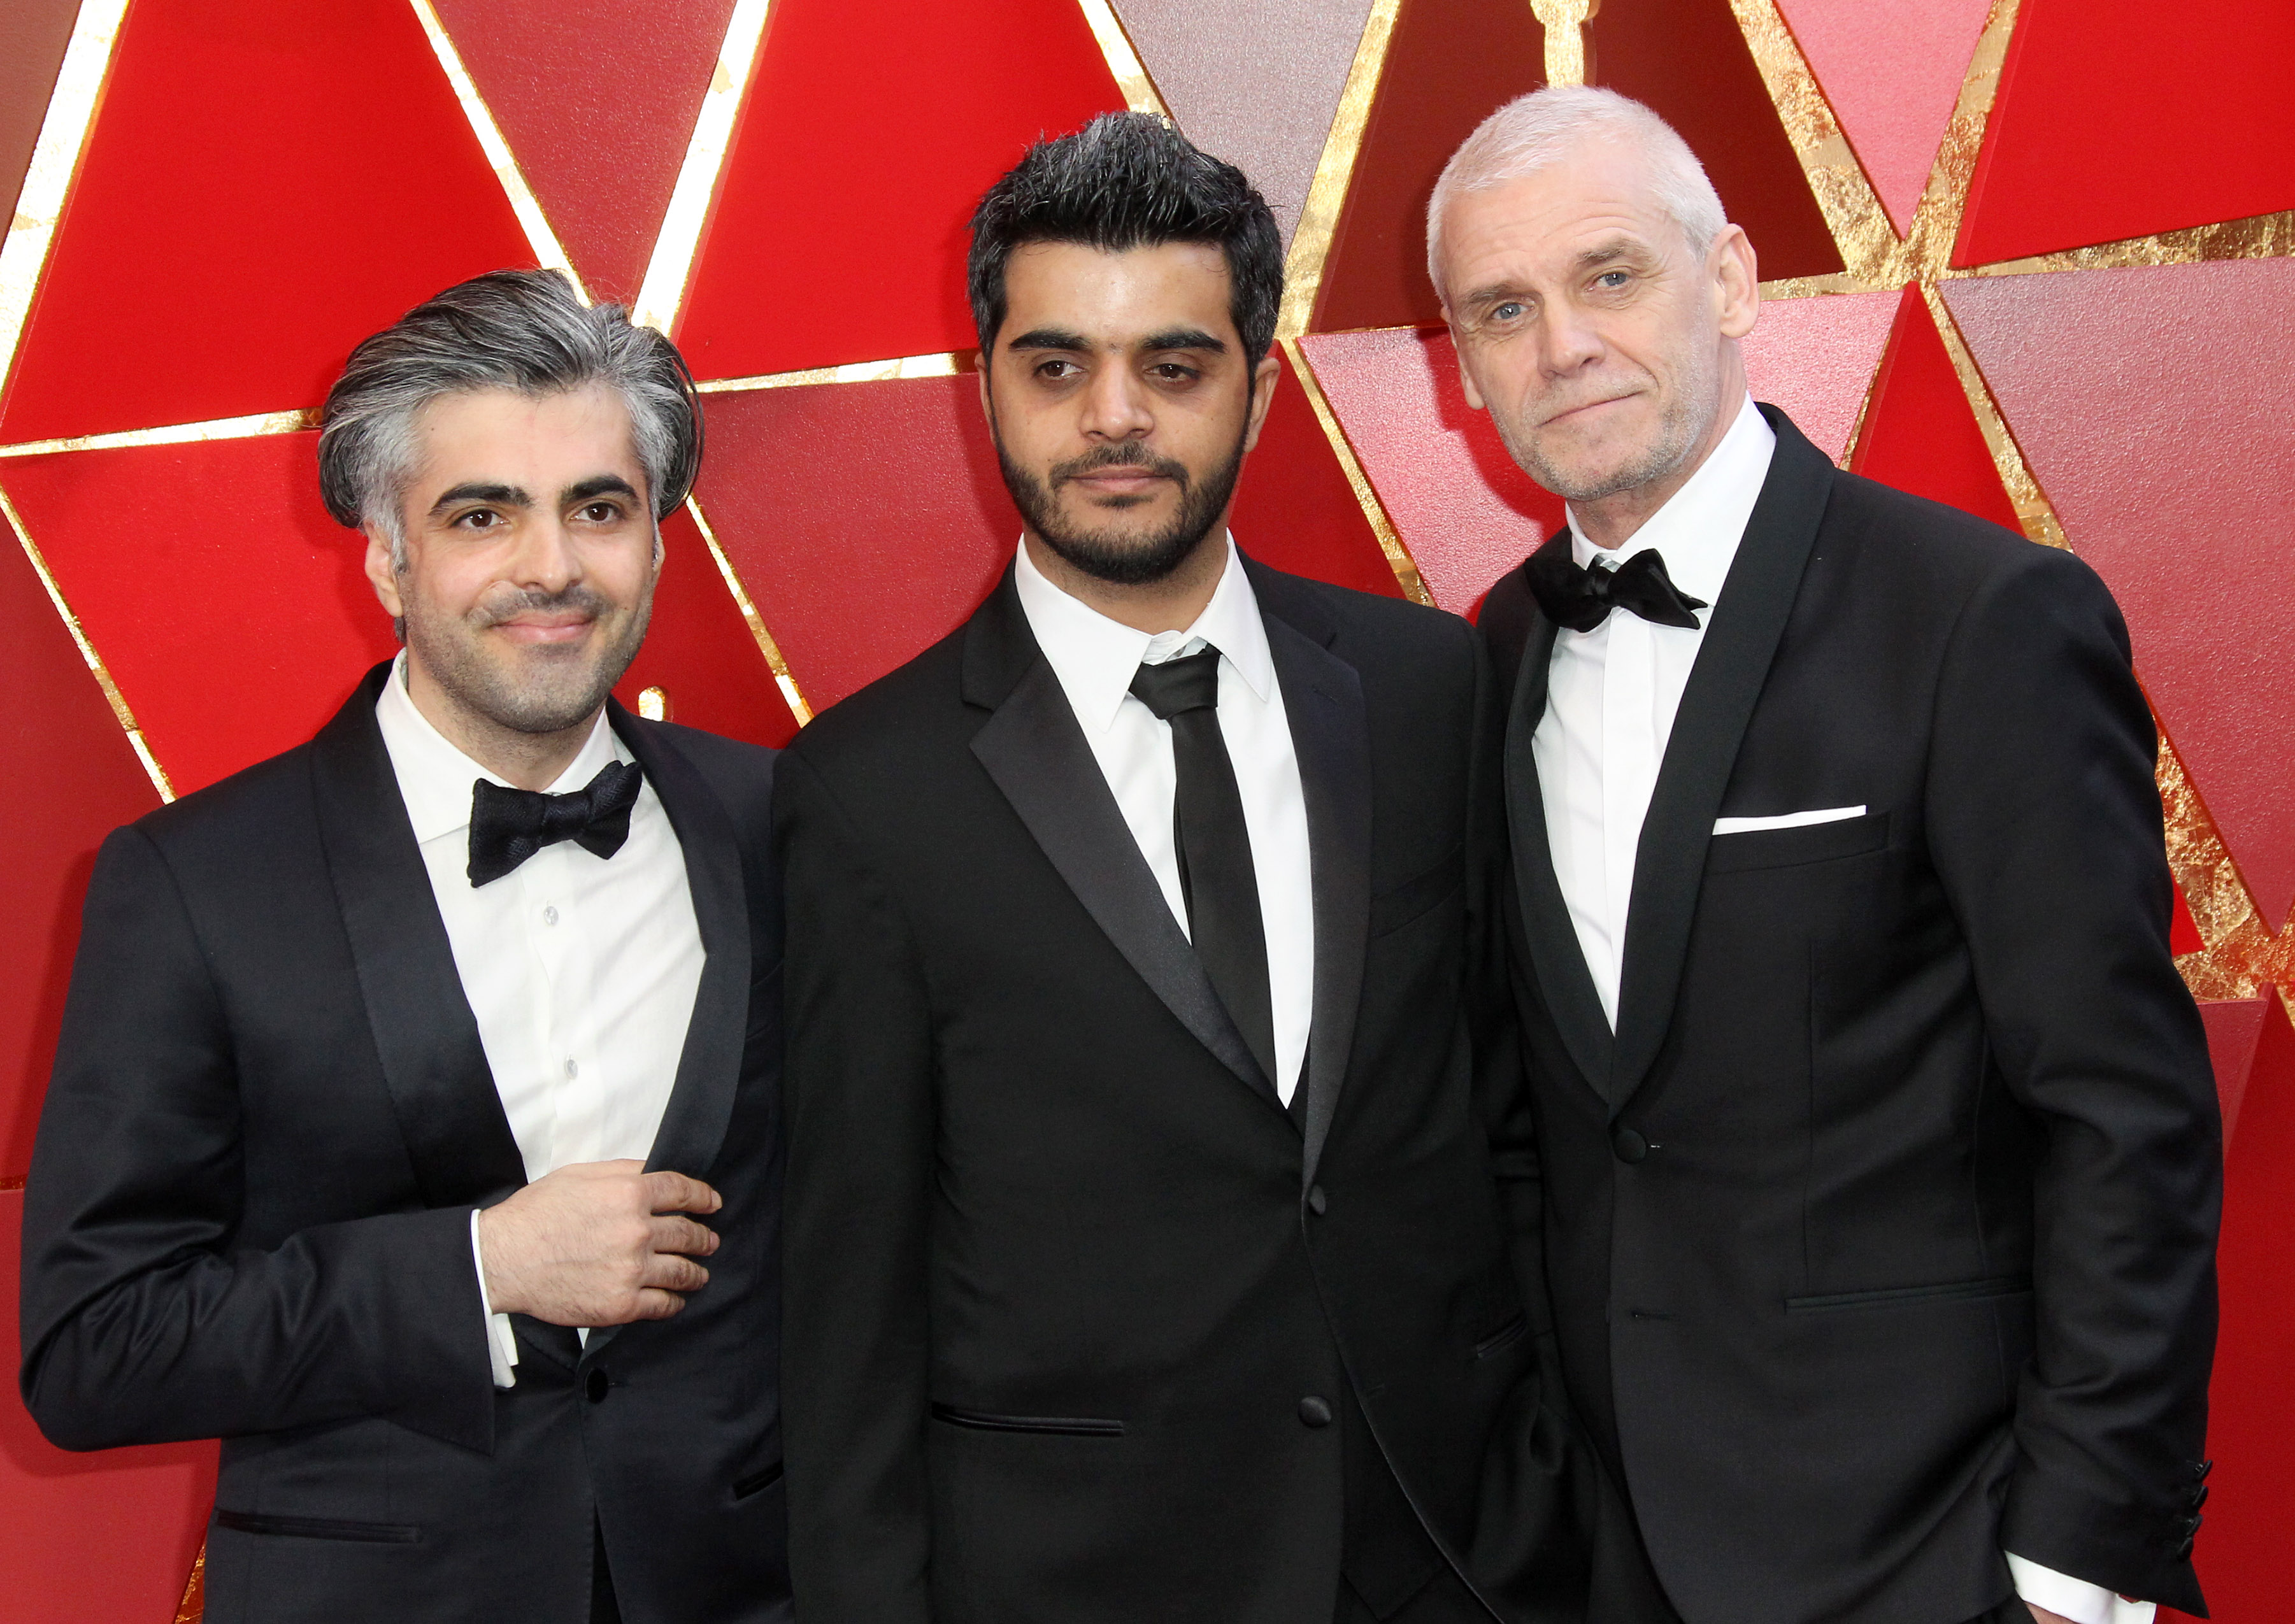 Feras Fayyad, Kareem Abeed and Soren Steen Jespersen{&amp;nbsp;}arrive at the 90th Annual Academy Awards (Oscars) held at the Dolby Theater in Hollywood, California. (Image: Adriana M. Barraza/WENN.com)<p></p>